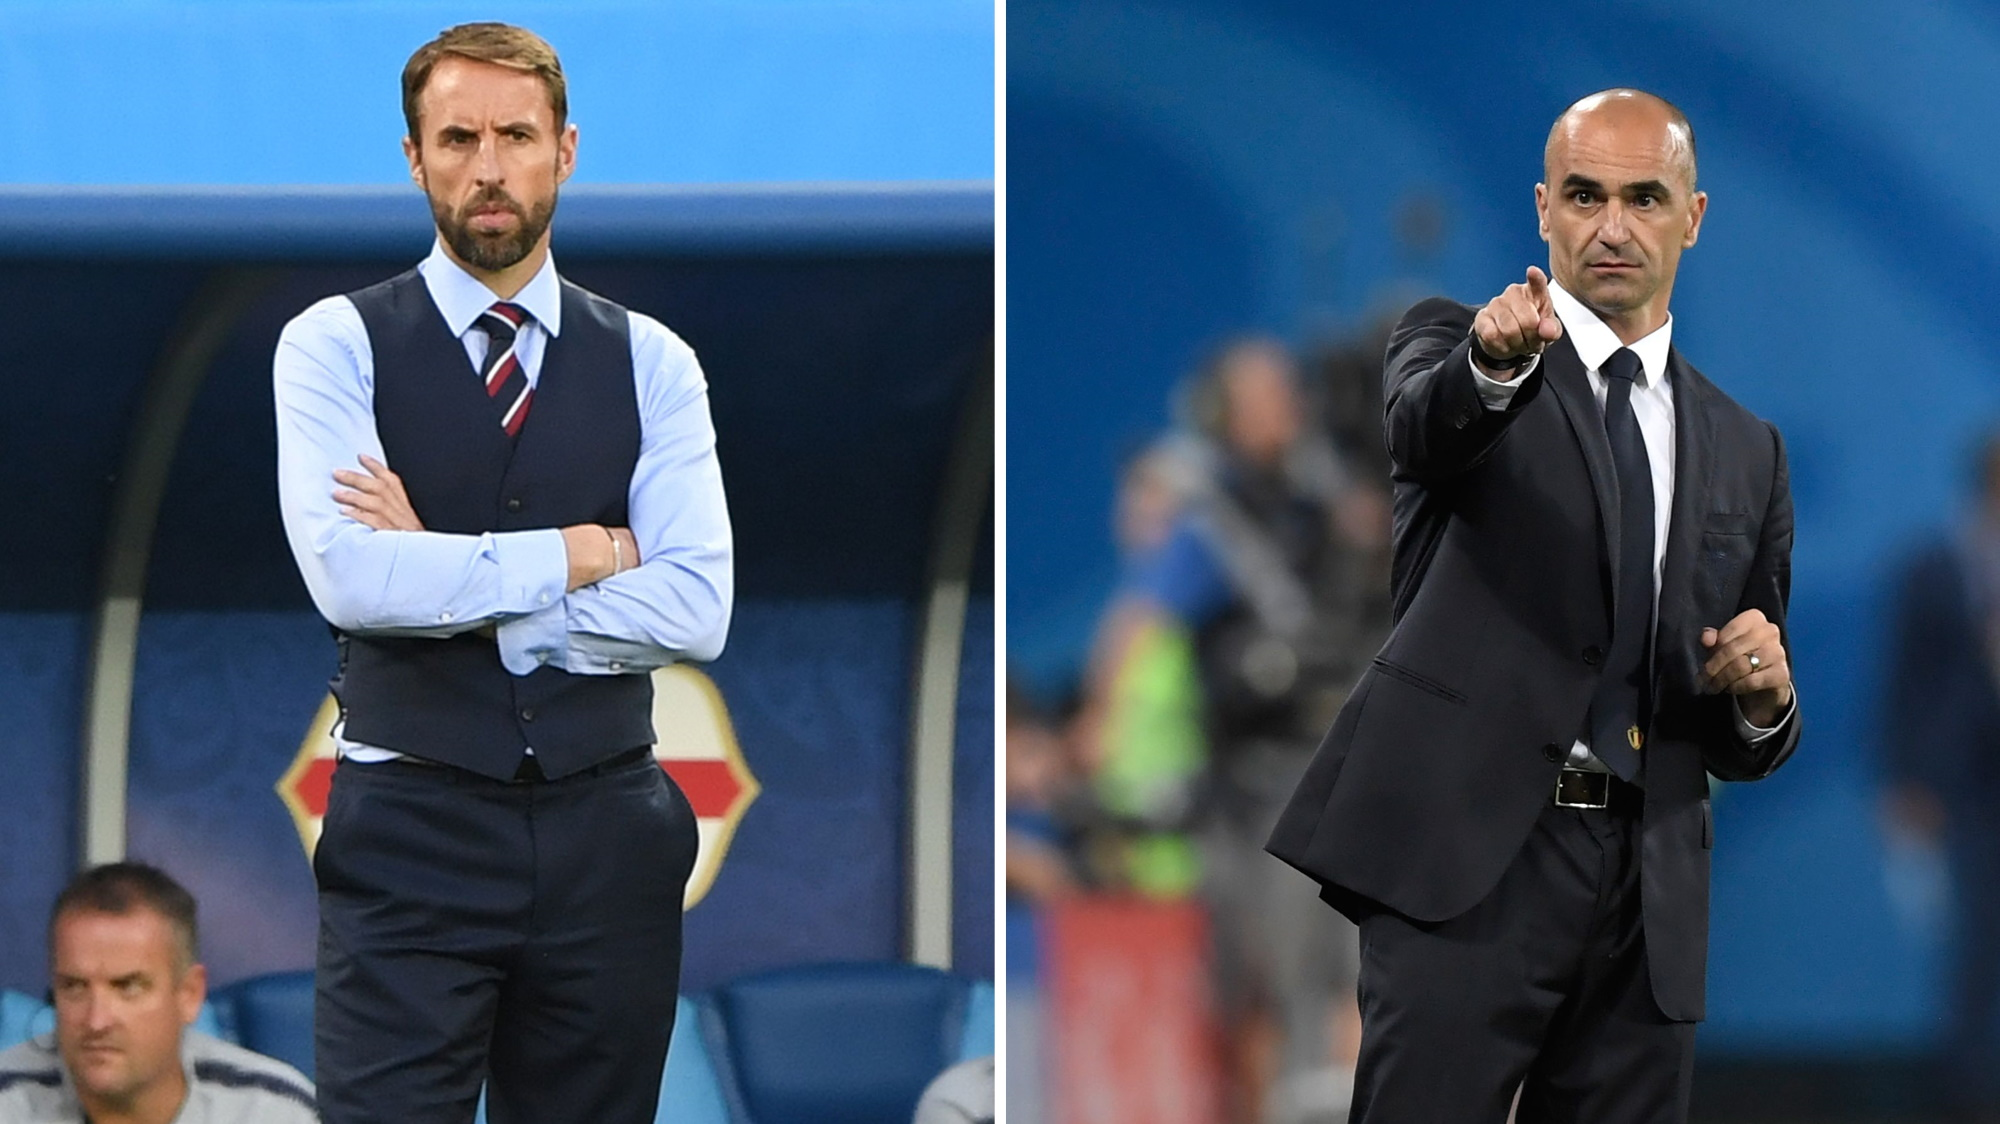 England vs Belgium live stream: how to watch 2020 Nations League from anywhere thumbnail